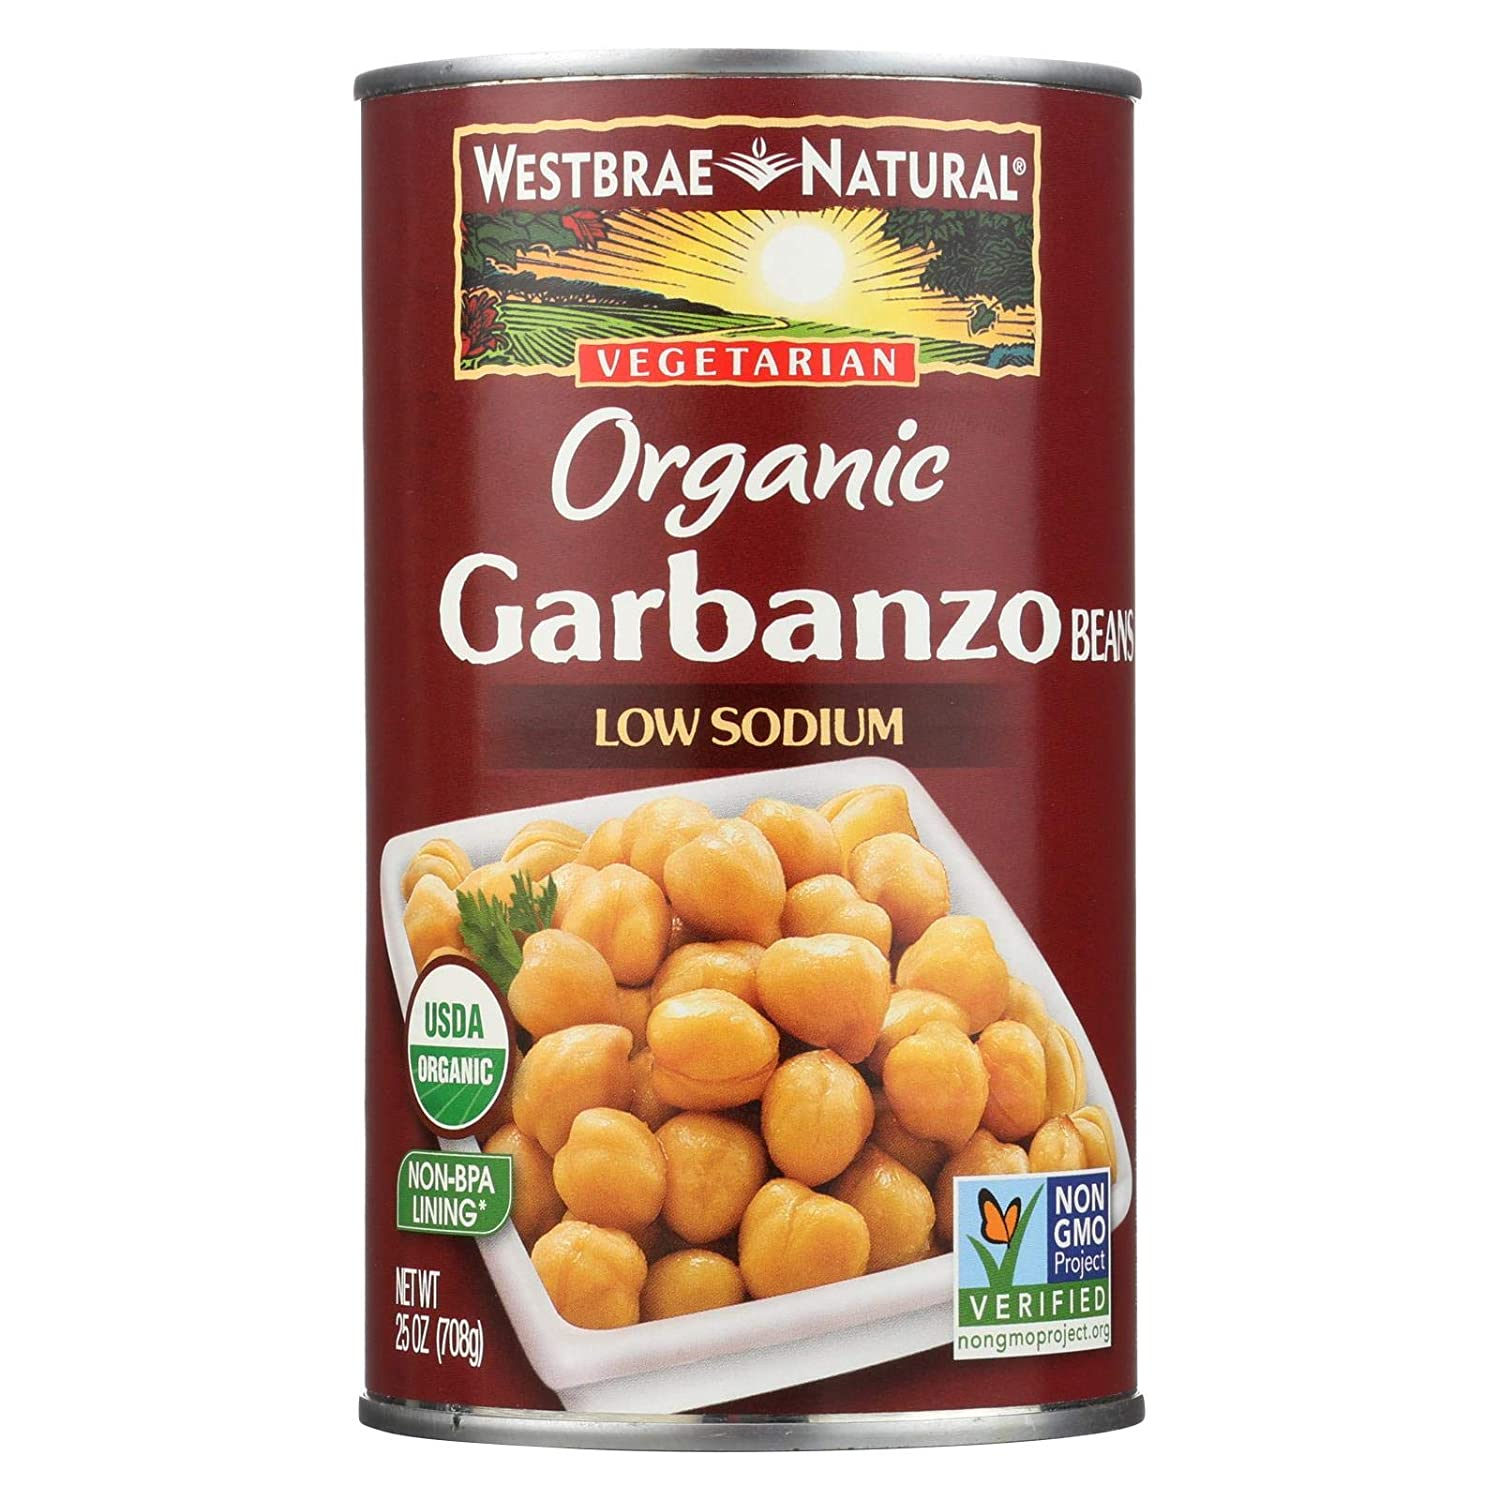 Organic Garbanzo Beans 25 of Minneapolis Mall 12 Case Quality inspection Ounces